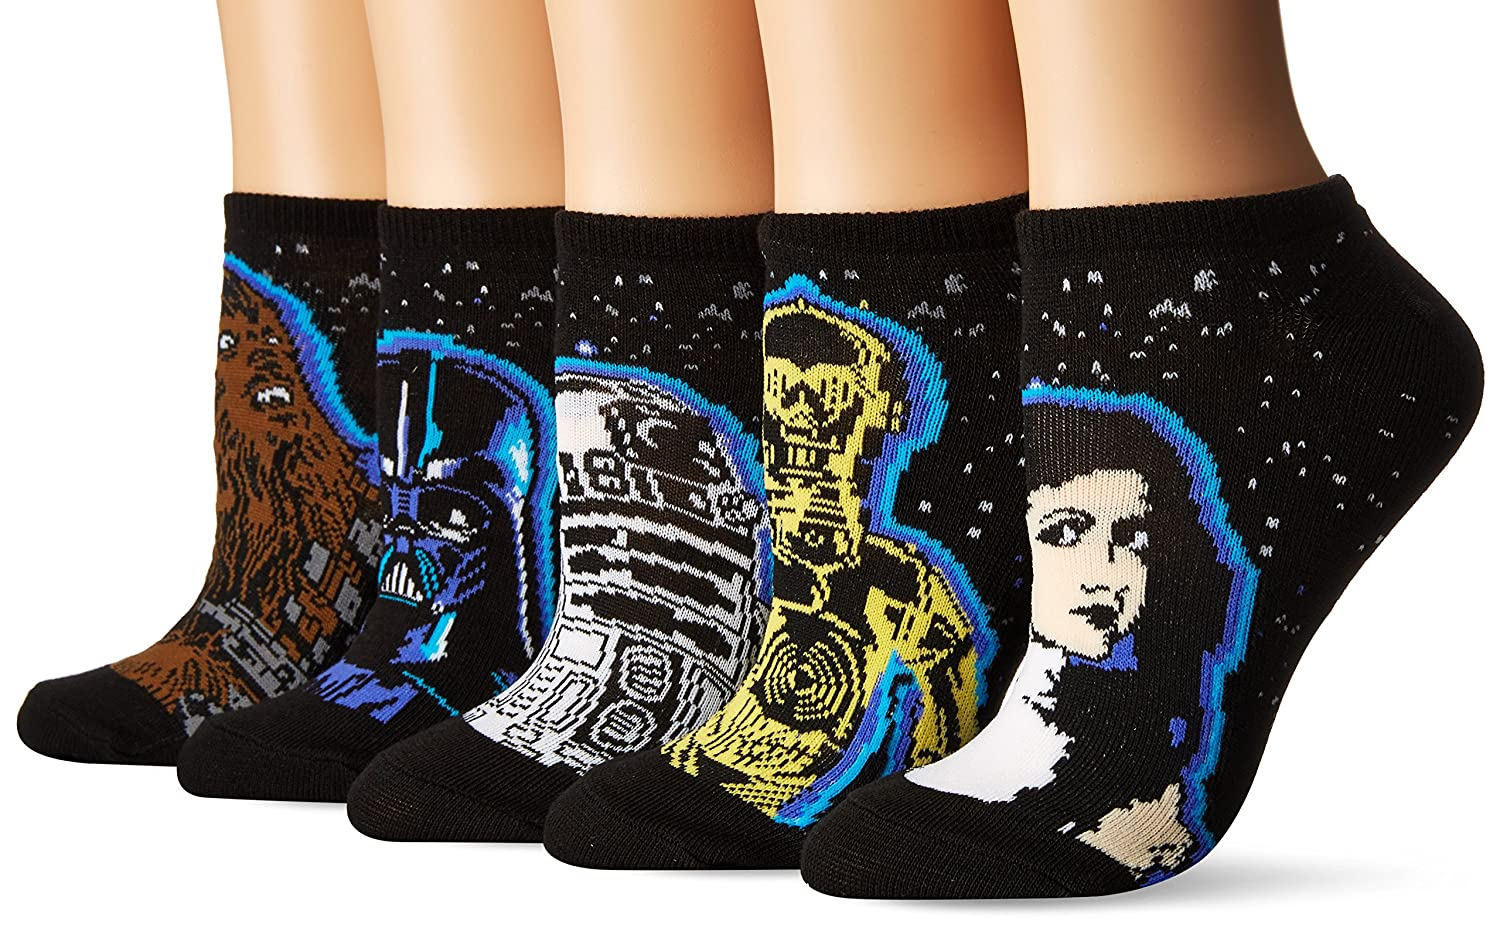 Star Wars 40th Anniversary 5 Pack No Show Socks Black 9-11 680904